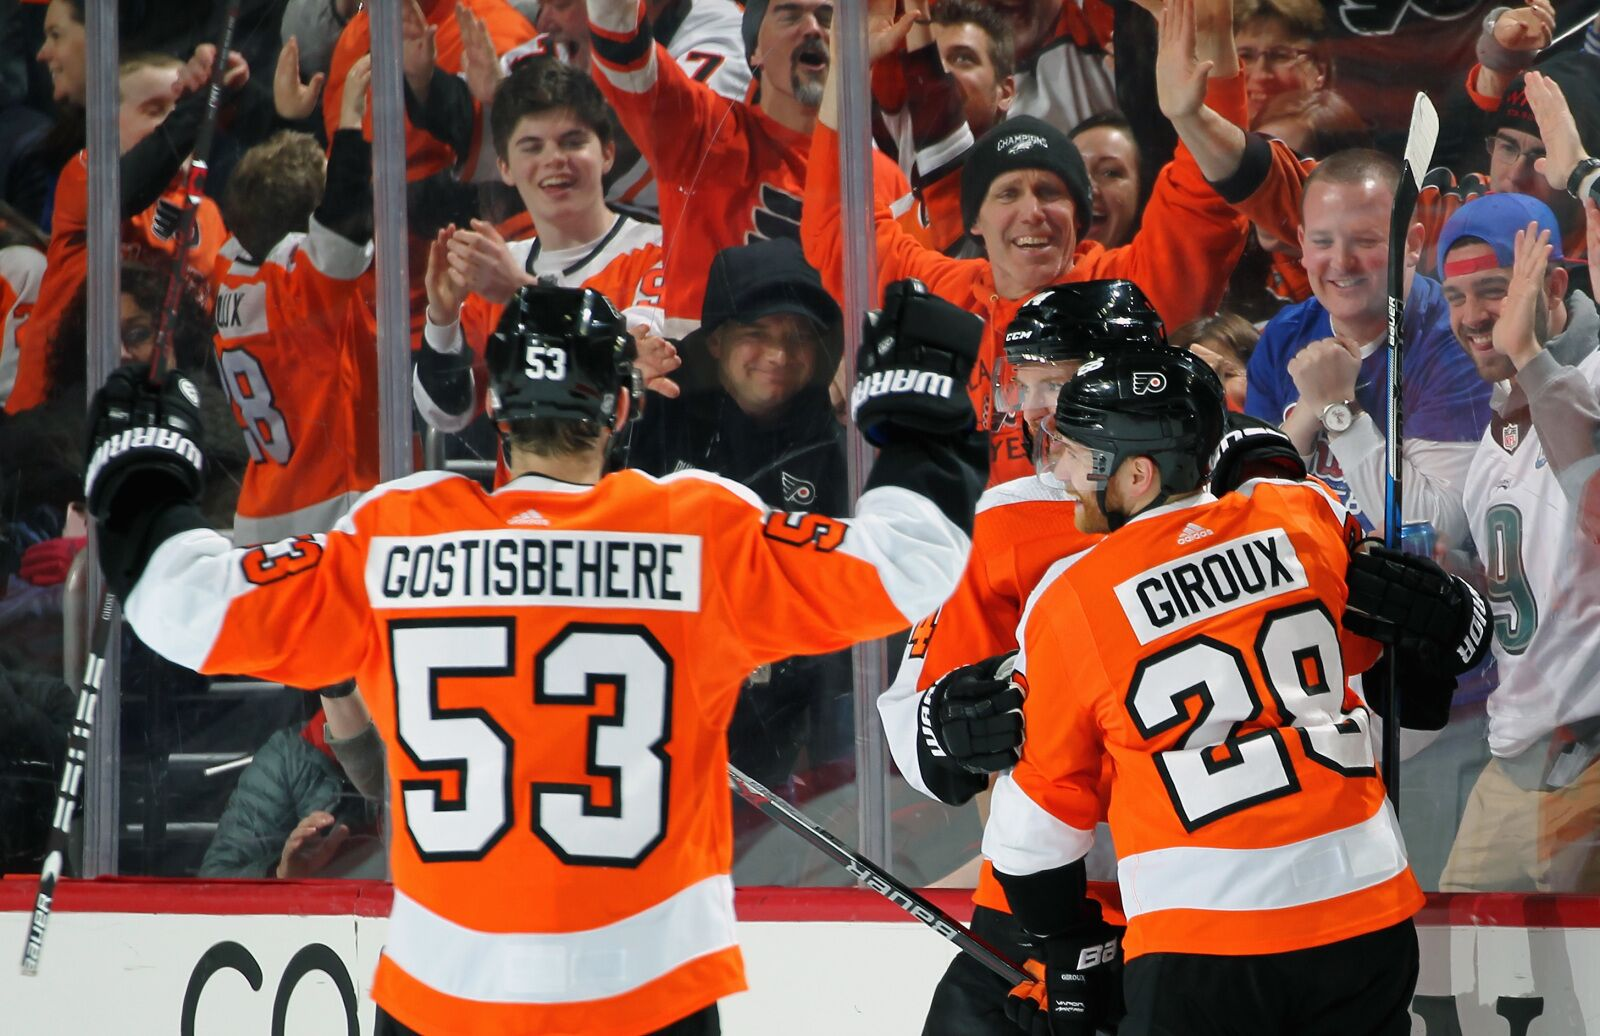 newest a2376 a0ad8 Philadelphia Flyers preview: James van Riemsdyk revamps ...